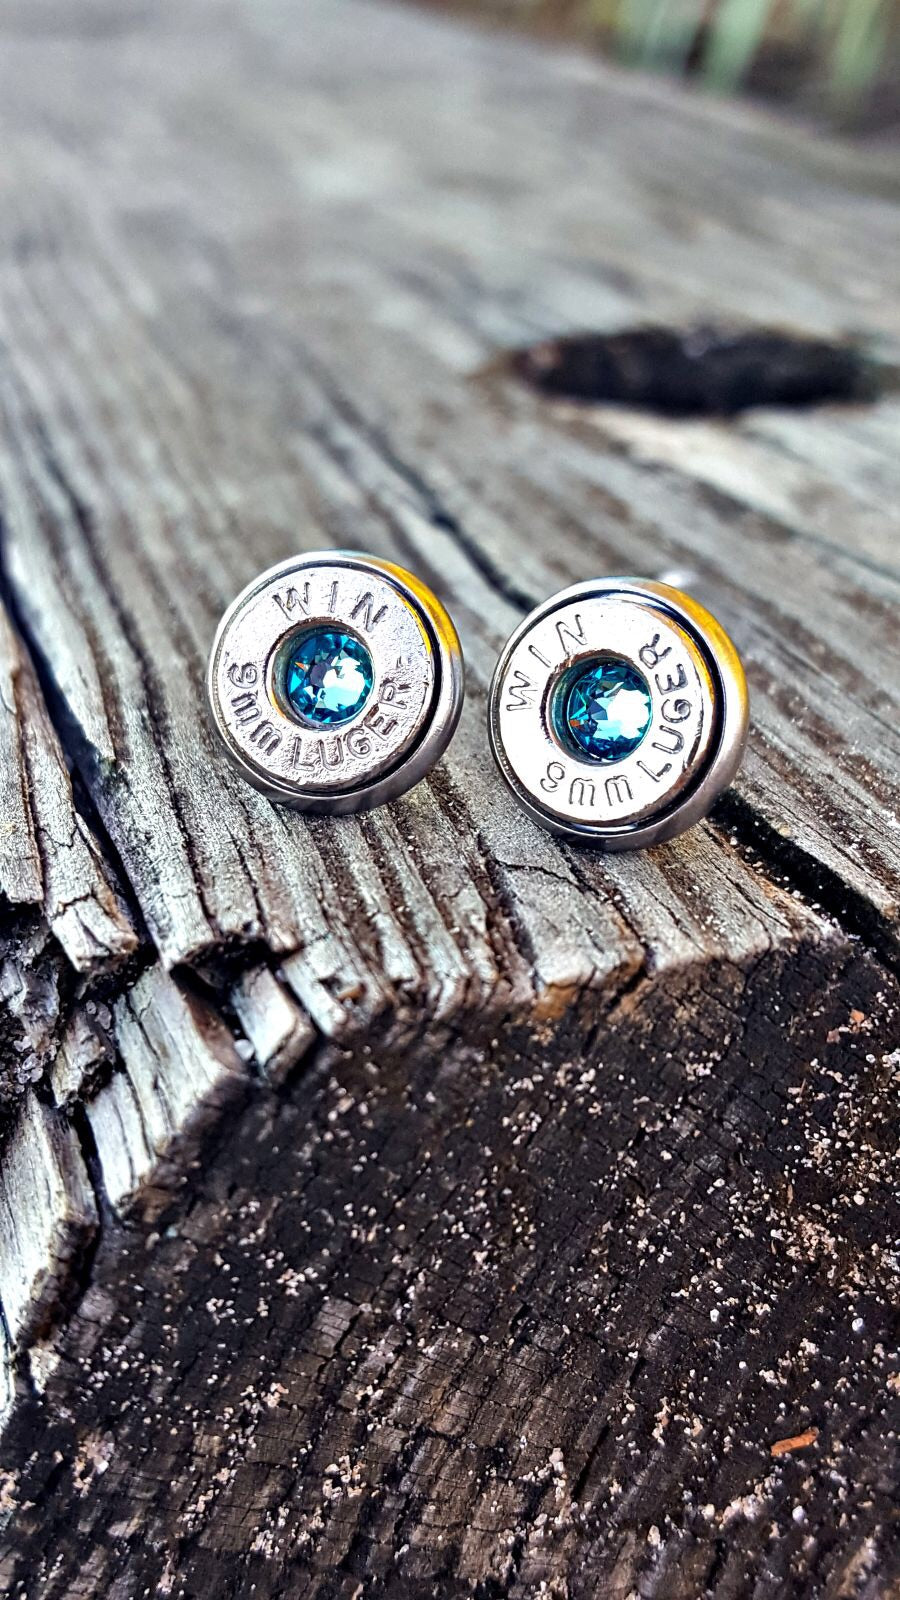 9mm Brass Earring Studs - Southern Bullets